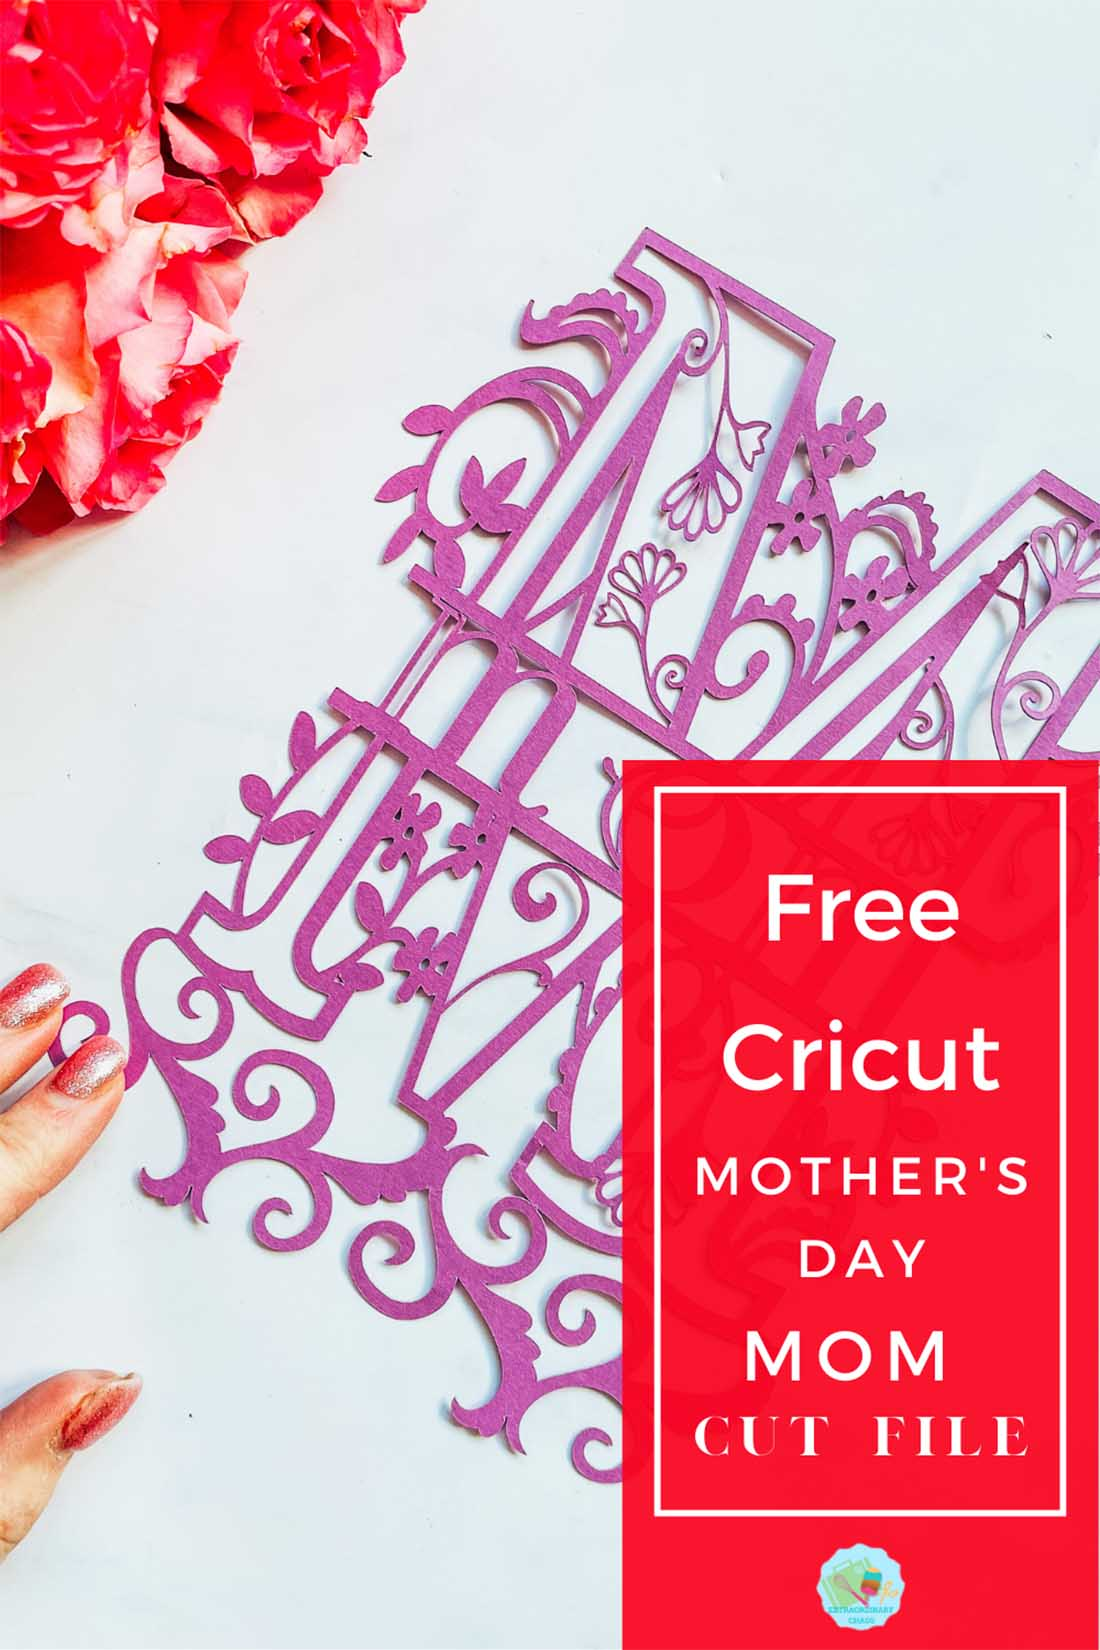 Free download for a Cricut Mom mothers day cut file for mothers day cards or scrapbooking